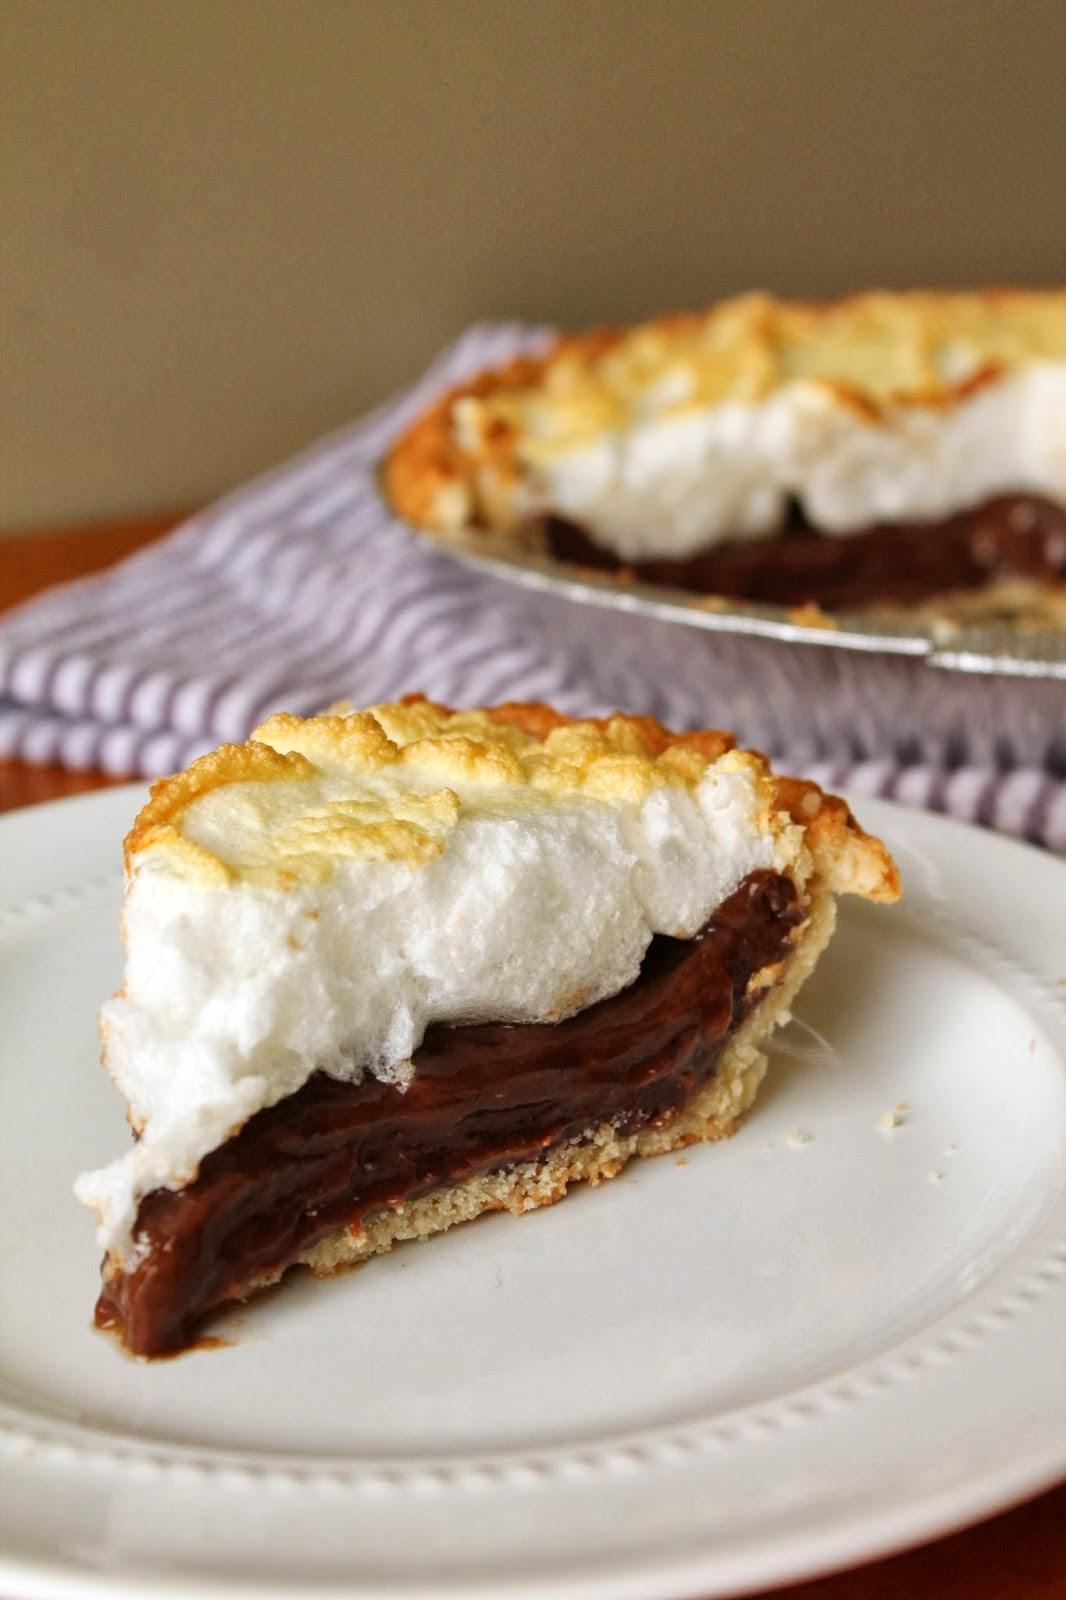 Old Fashion Chocolate Pie | My Grandmother's Recipes Louisiana Bride